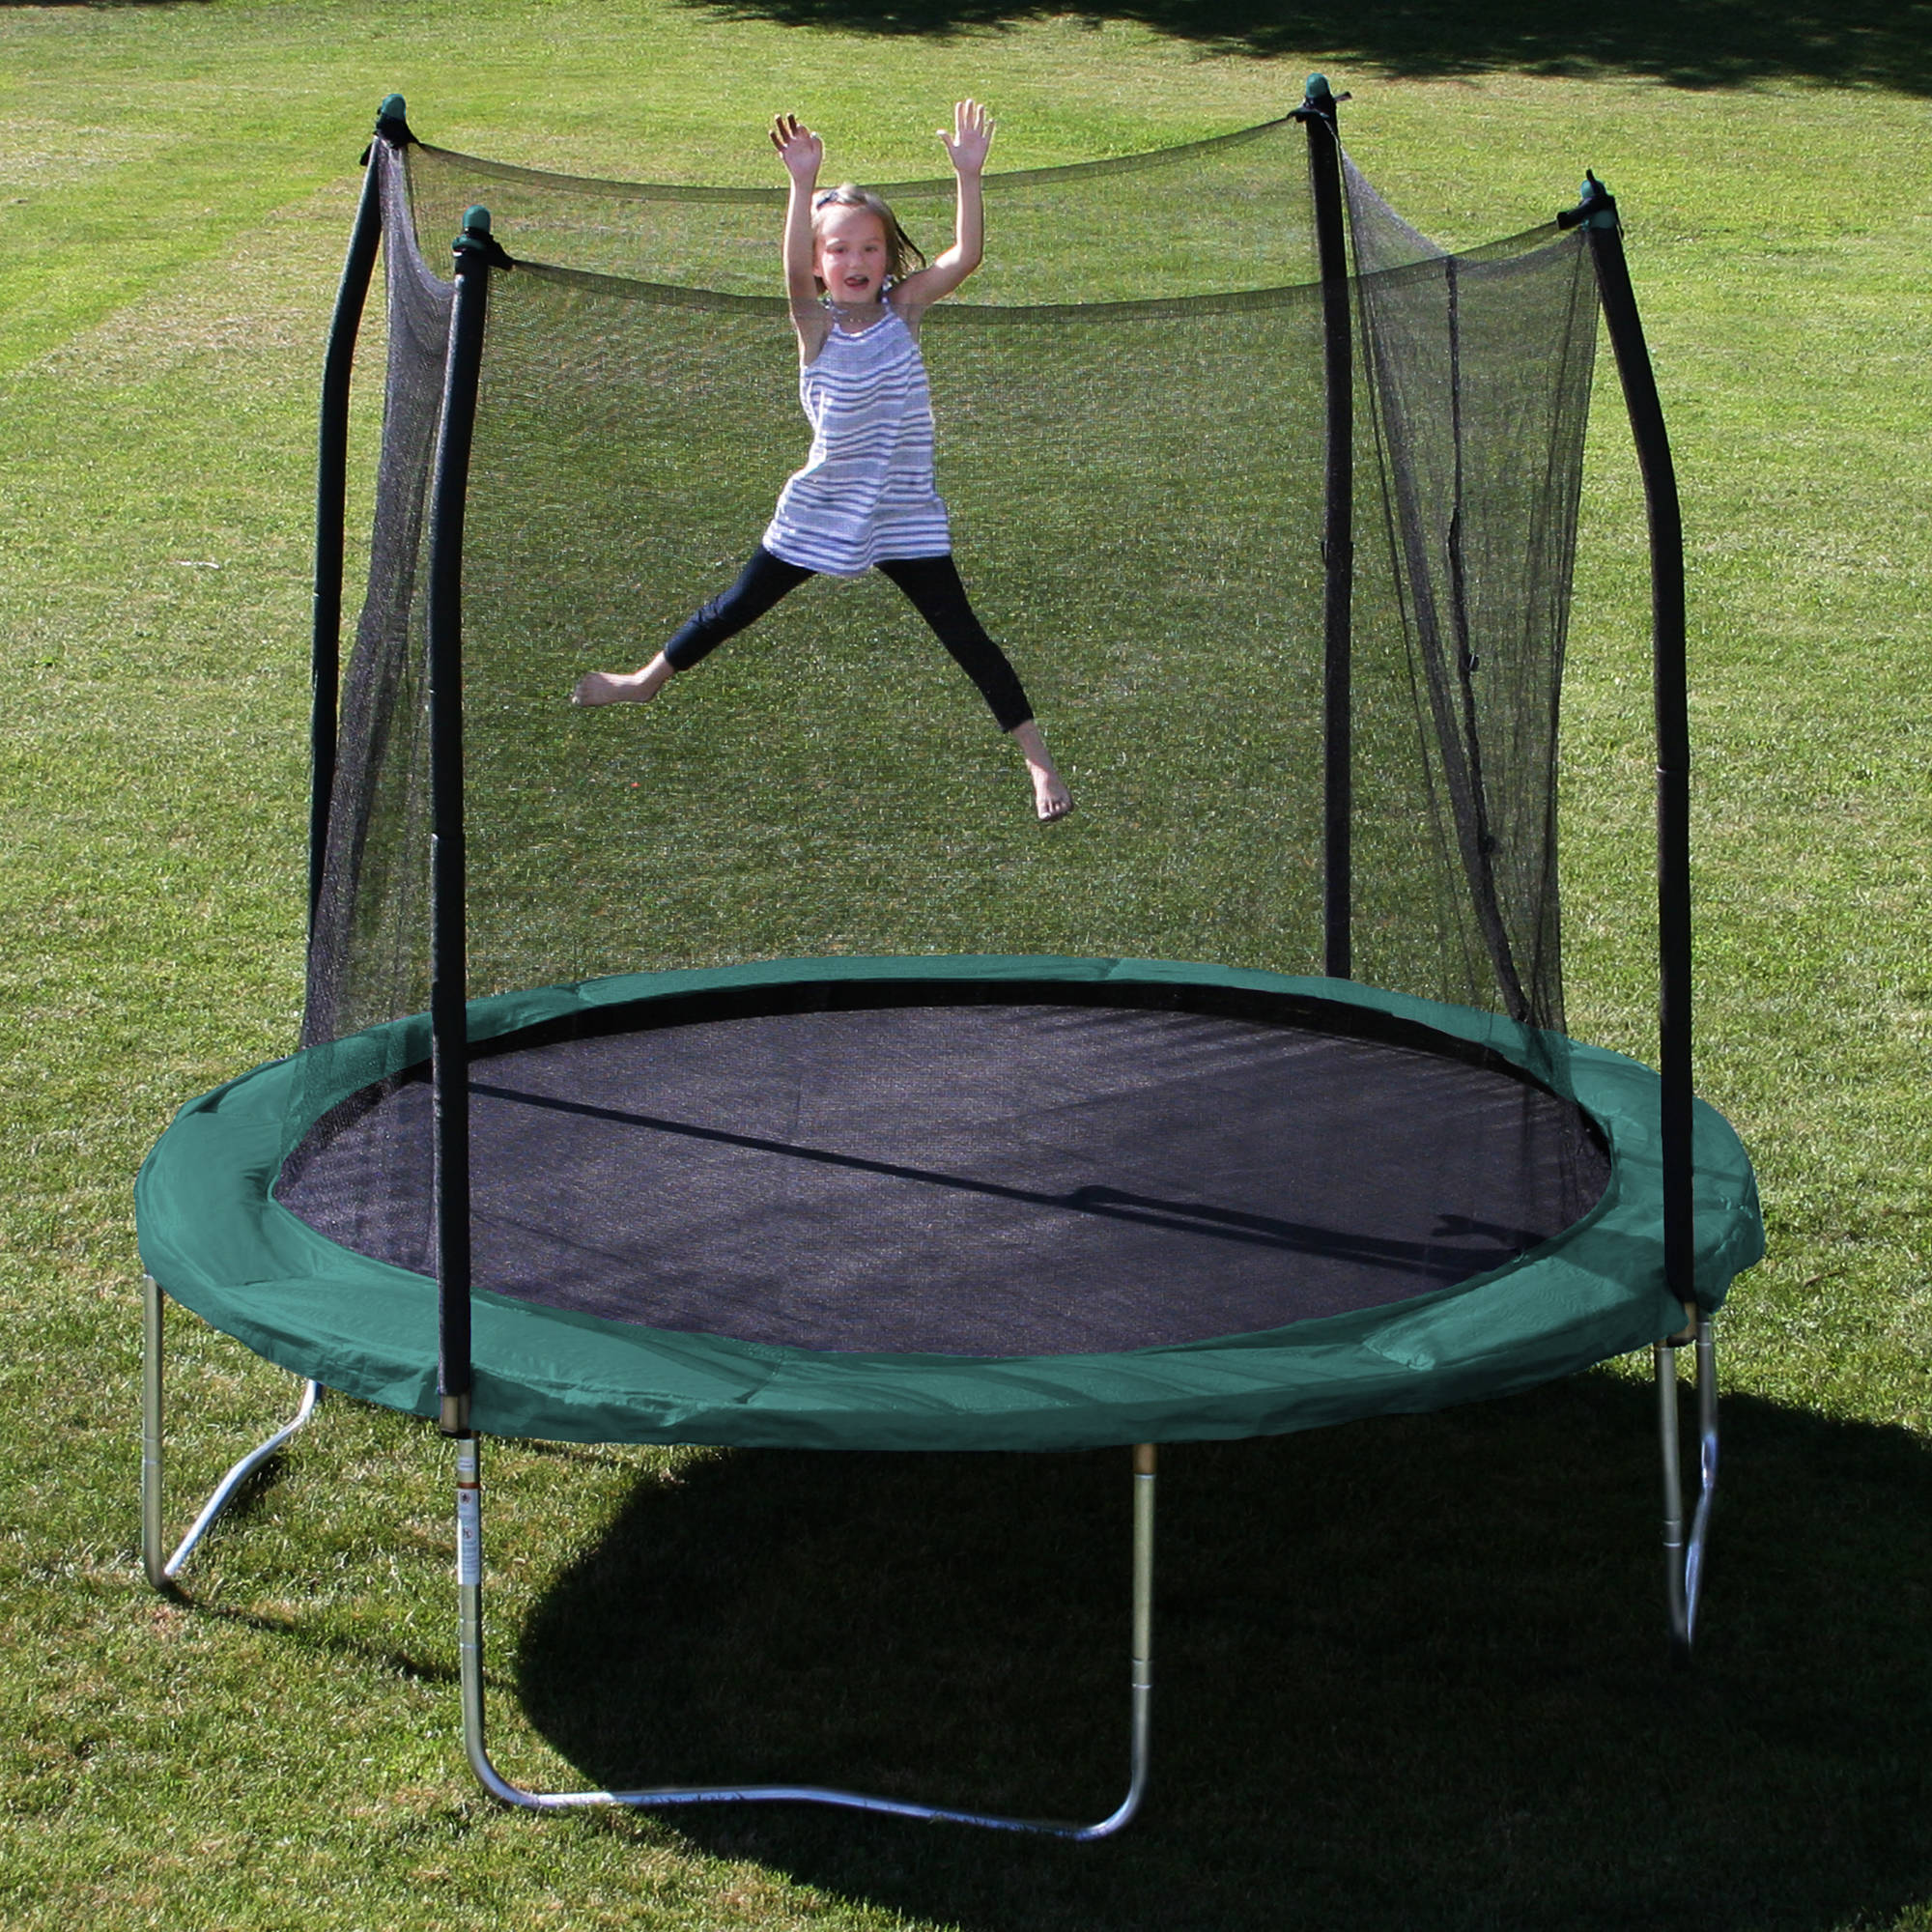 Skywalker Trampolines 10' Round Trampoline and Safety Enclosure with Green Spring Pad